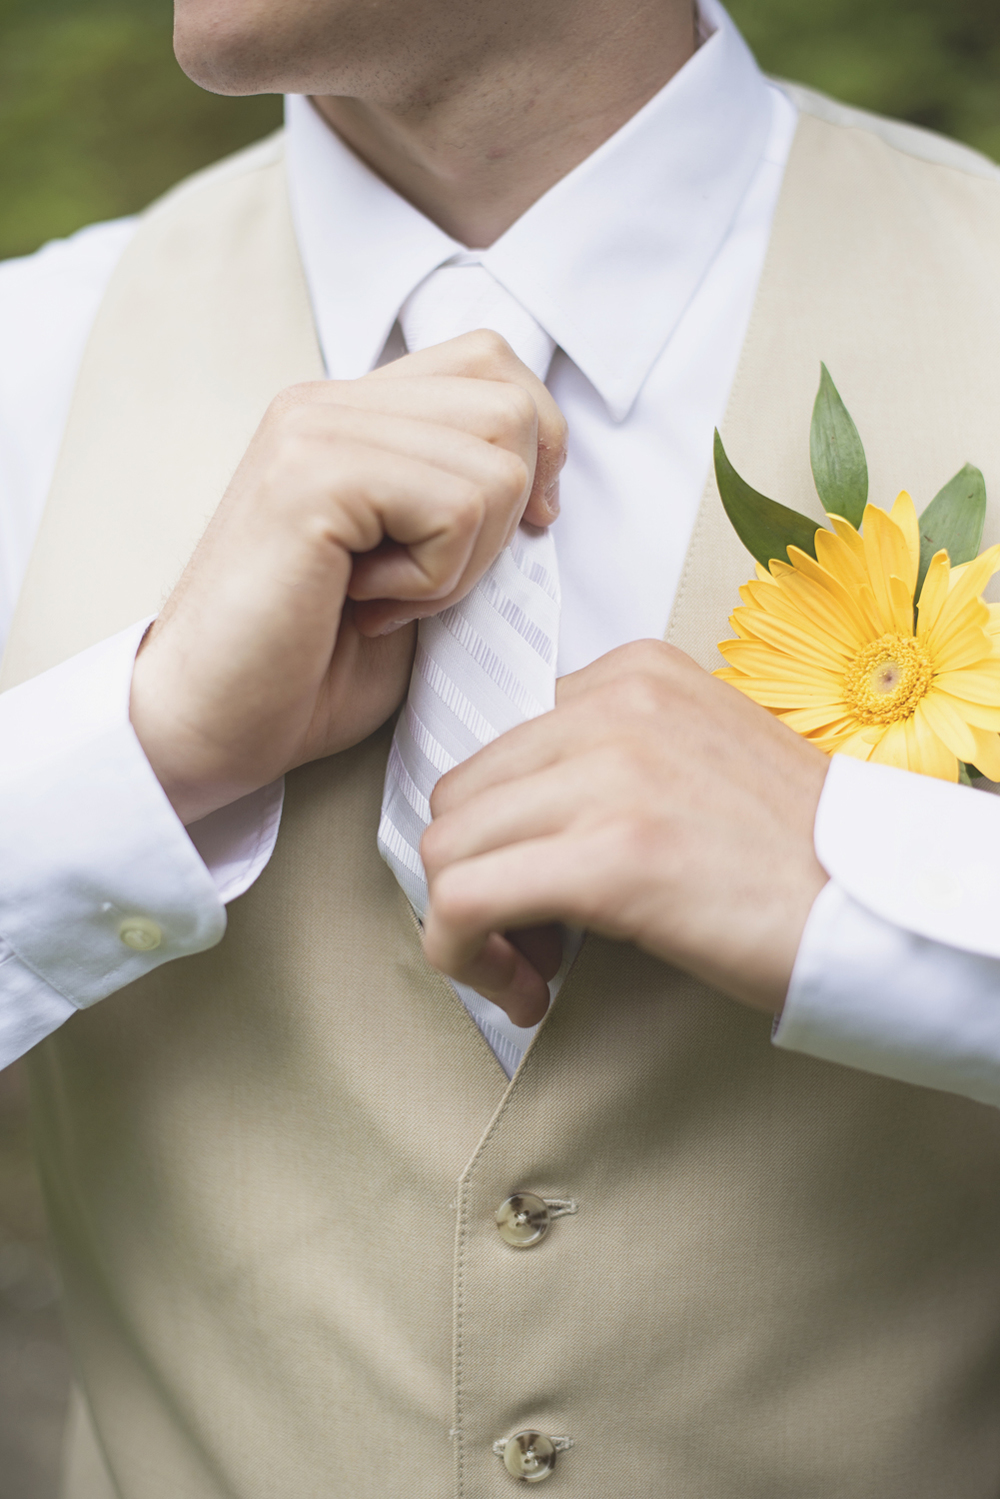 Mariners Museum Wedding | Newport News, Virginia |  Yellow daisy boutonniere